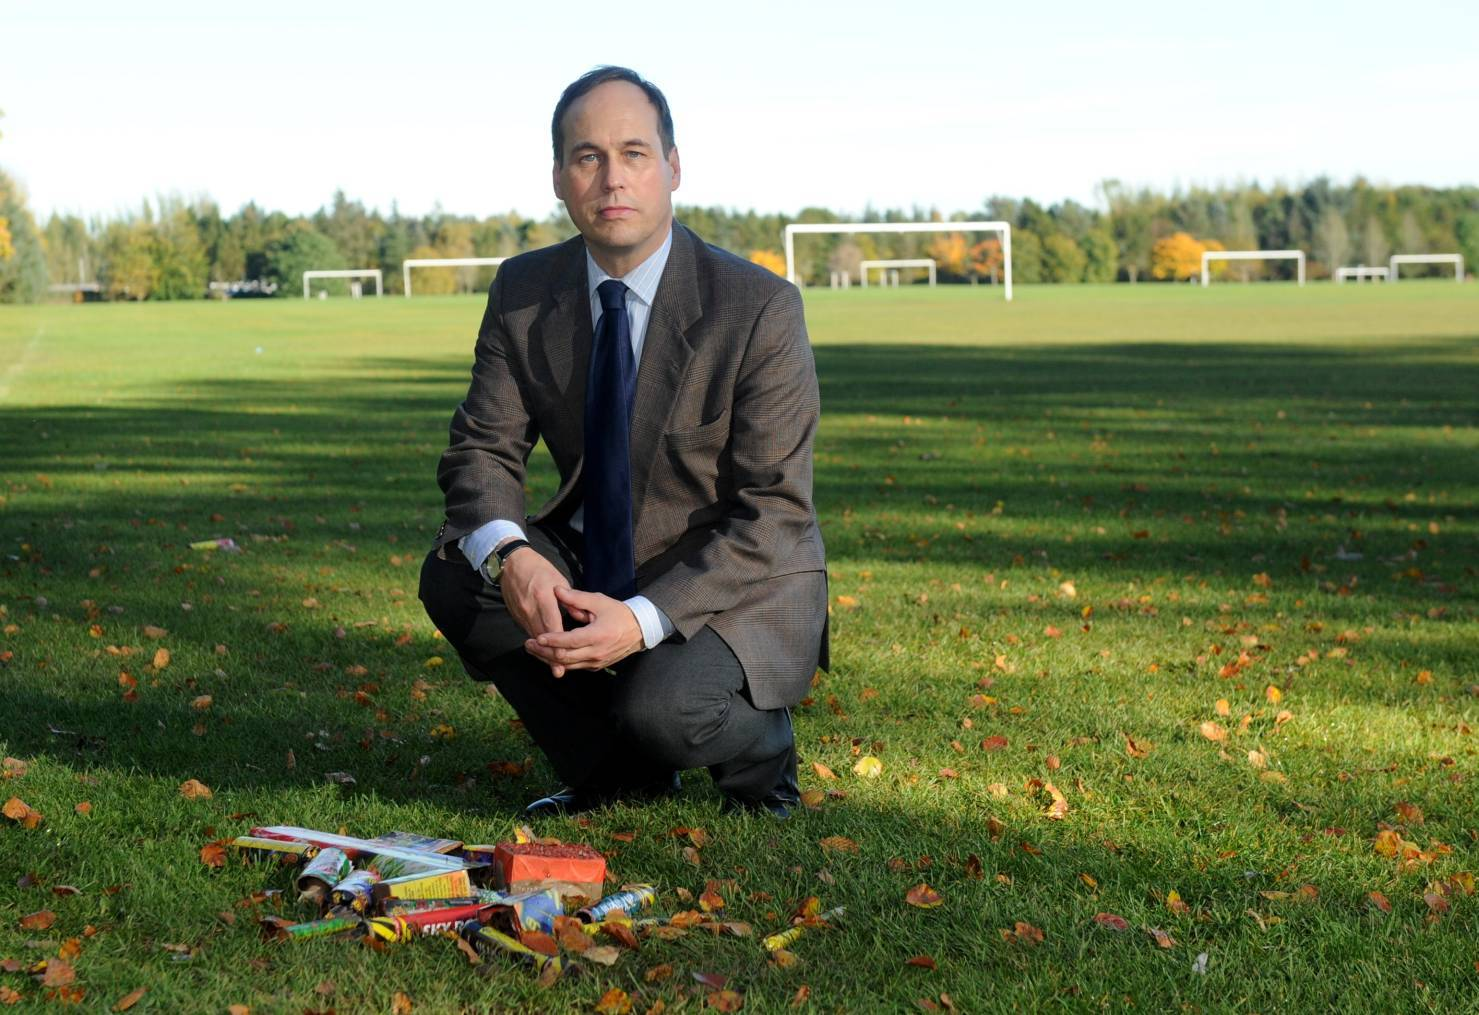 Cllr Martin Greig has asked for an end to Hazlehead Park littering.